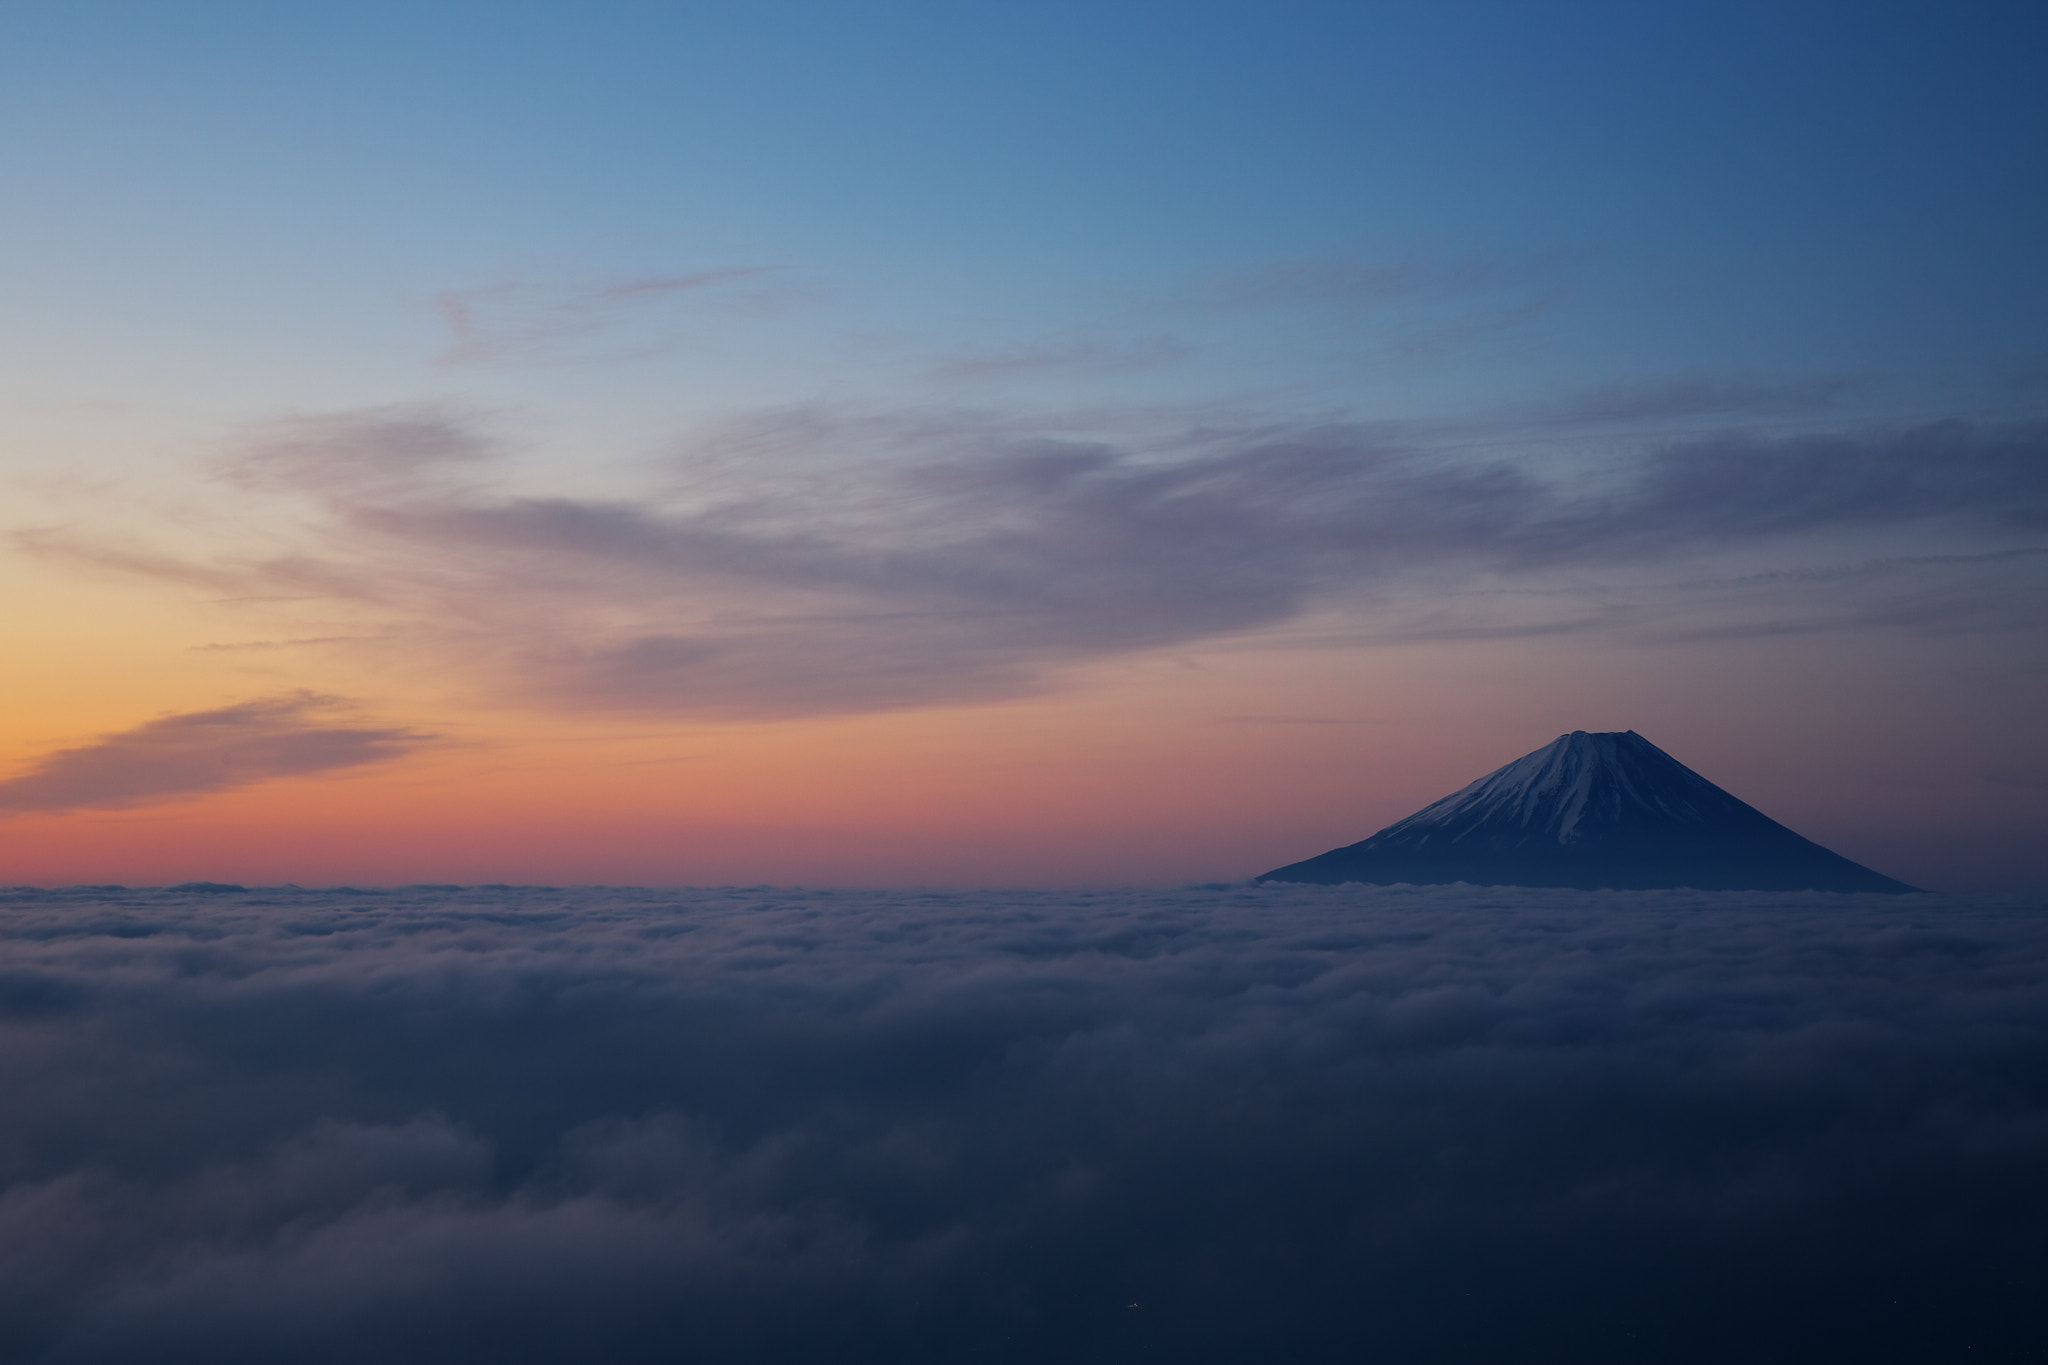 Photograph Fuji & another clouds by Shinichi Osa on 500px